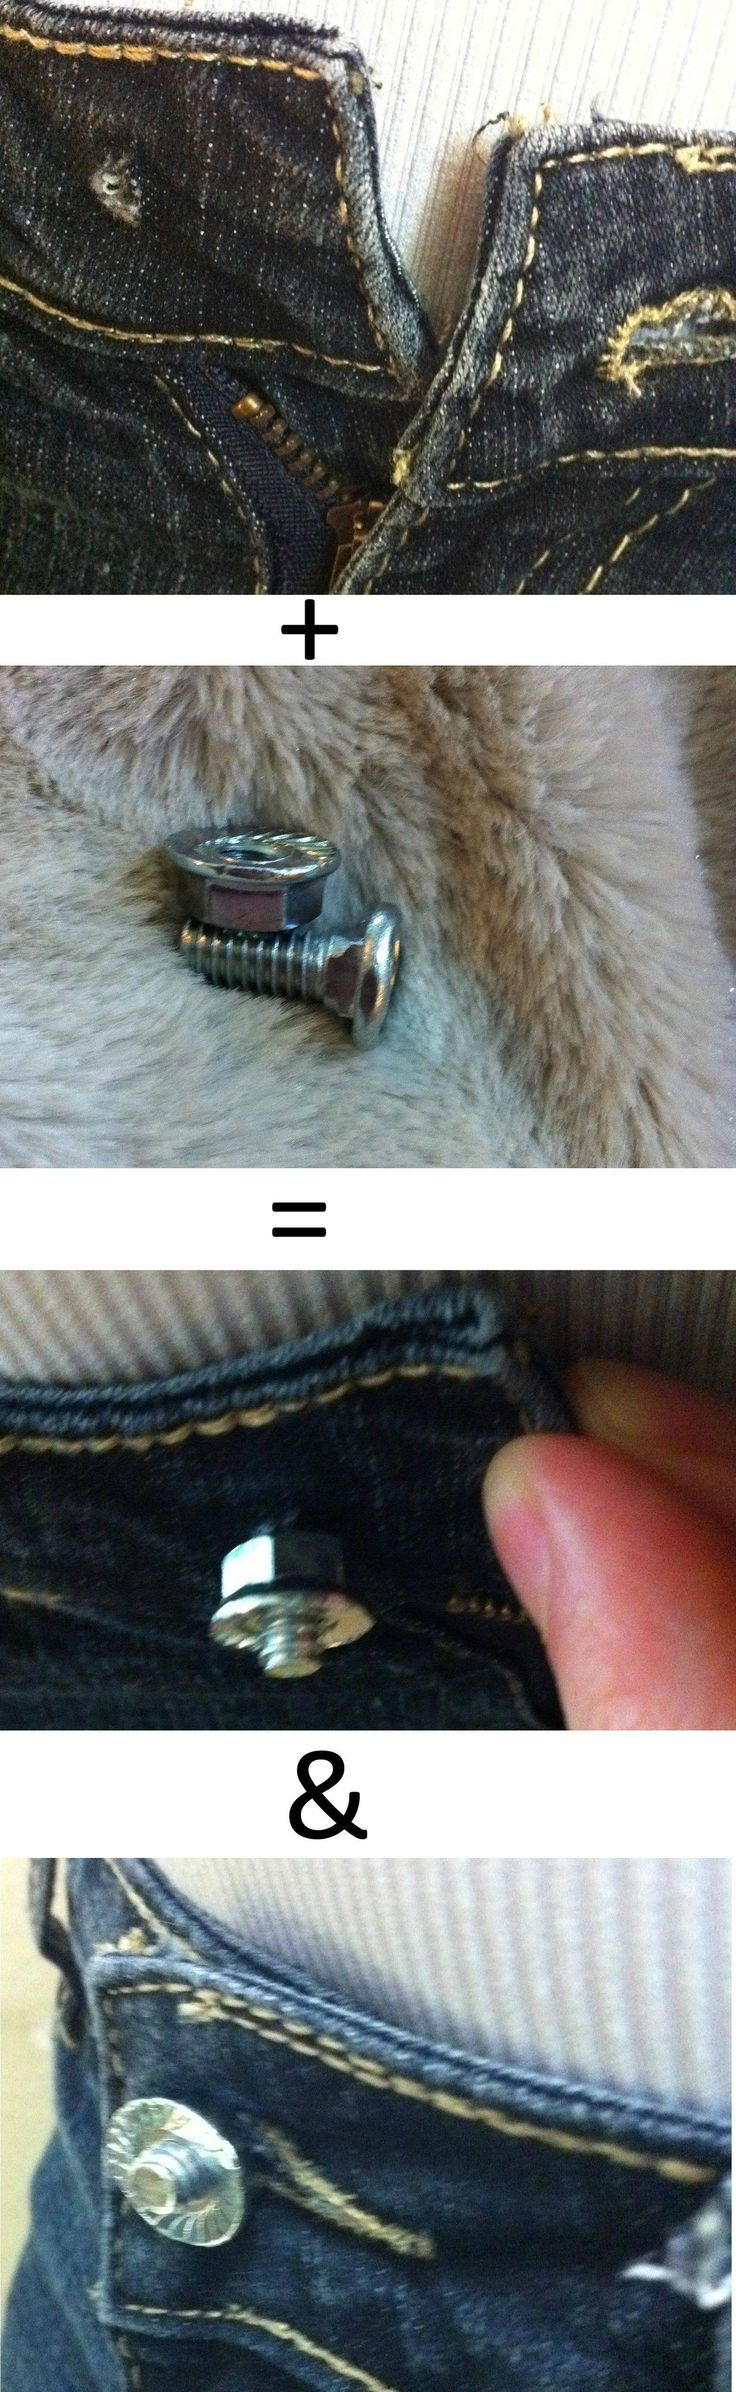 Quick and Cheap fix for a busted jean button. Why did I never think of this?! I swear sometimes Pinterest makes me feel like an idiot!